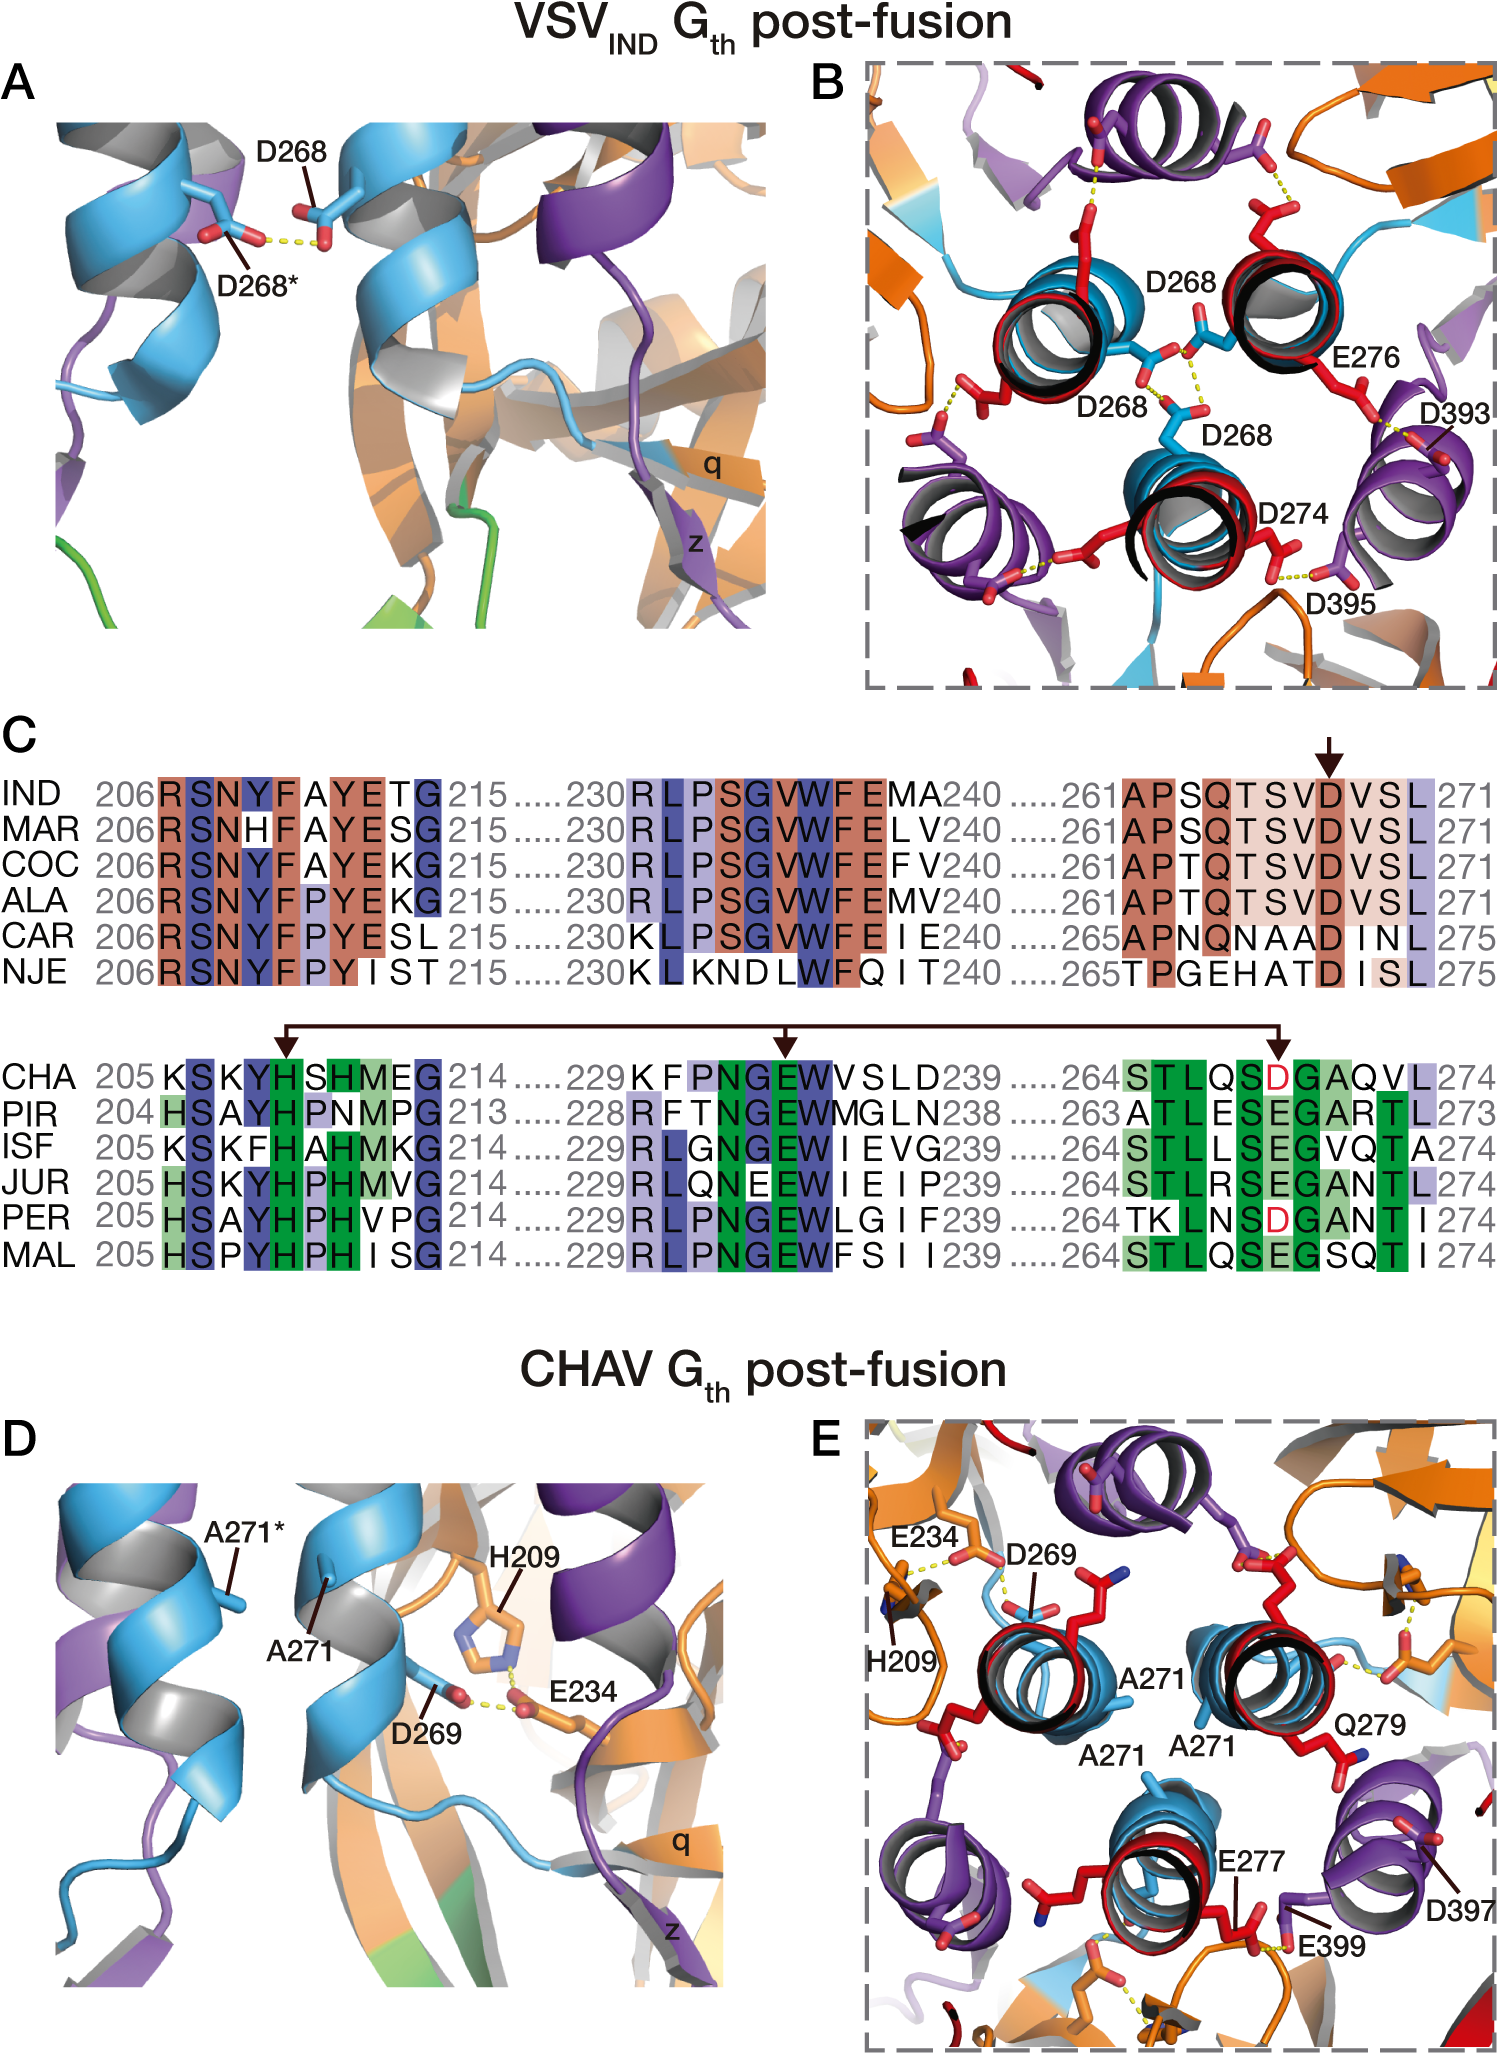 pH sensitive molecular switches in the post-fusion structures of VSV-G<sub>th</sub> and CHAV-G<sub>th</sub>.